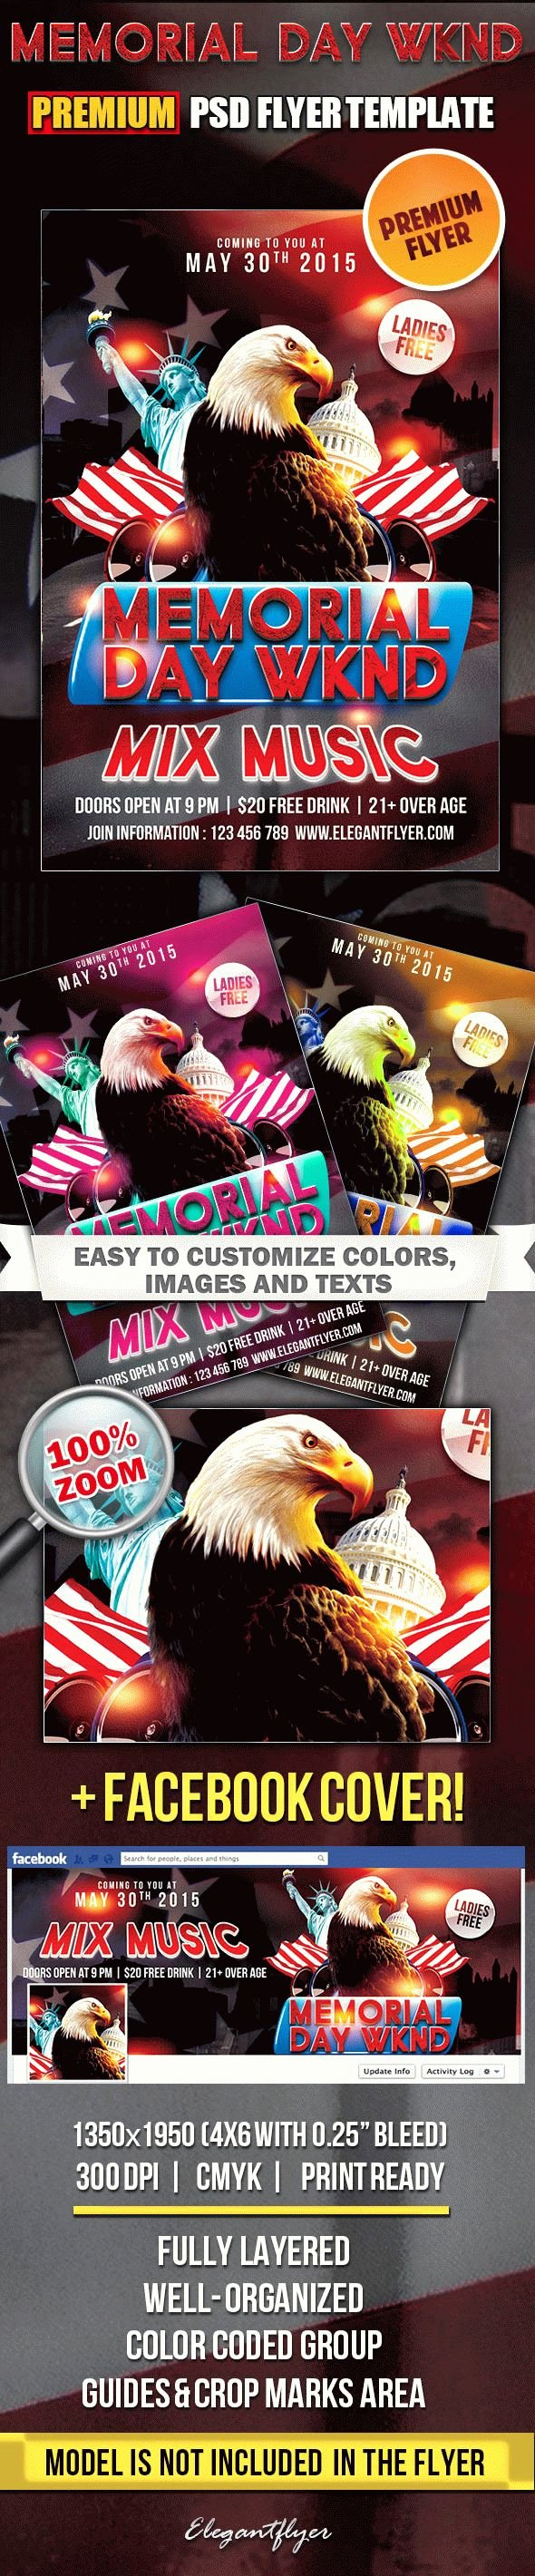 Memorial Day Flyer Template Free Beautiful Memorial Day Wknd – Flyer Psd Template – by Elegantflyer